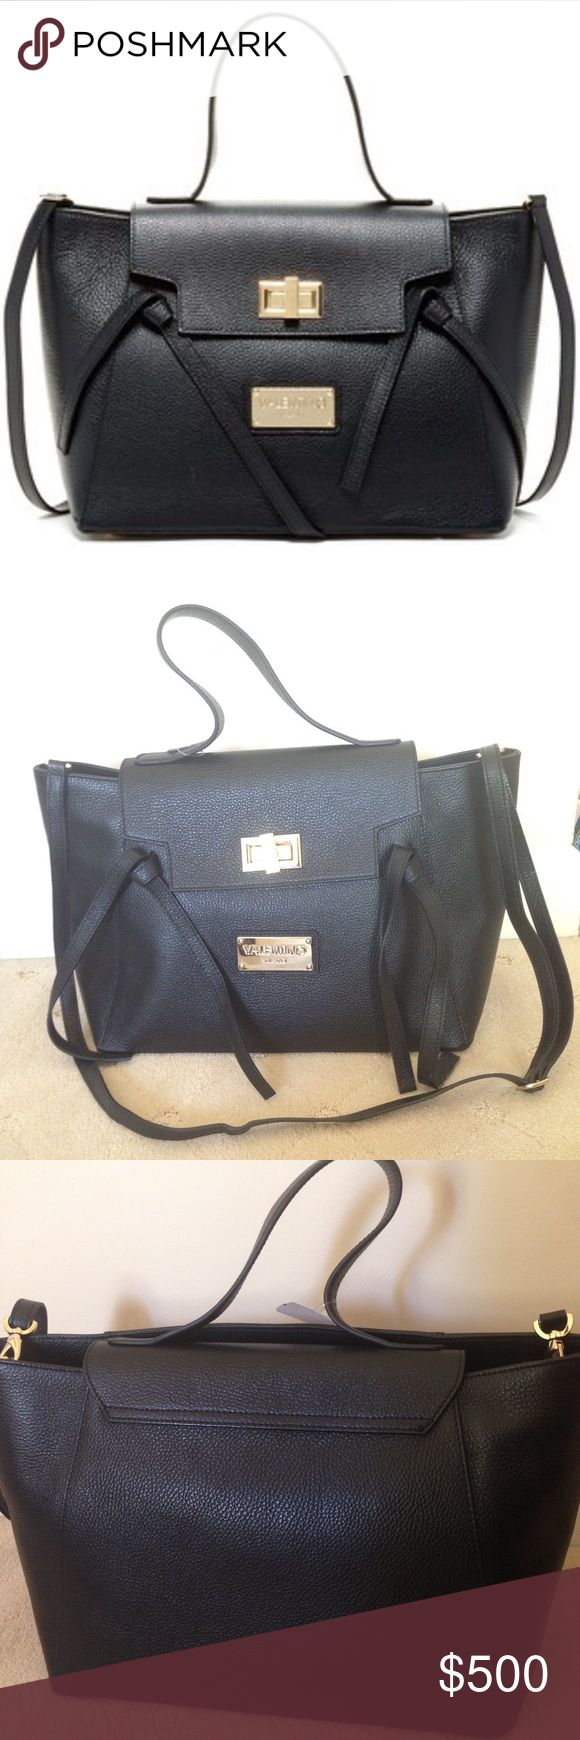 """Valentino Camilla Genuine Leather Tote! MARIO VALENTINO BAG! Comes with single top handle and detachable, adjustable shoulder strap! The foldover flap has a turn-lock closure. The exterior features metal logo accent, knotted ties, and metal feet. The interior features zip top closure, 1 zip pocket, and 2 media pockets. Measures Approx. 11"""" H x 17"""" W x 7.5"""" D with approx. 6"""" handle drop, 11-24"""" strap drop Retails for over $800 - don't miss out on the discount!! Authentic bag but doesn't come…"""